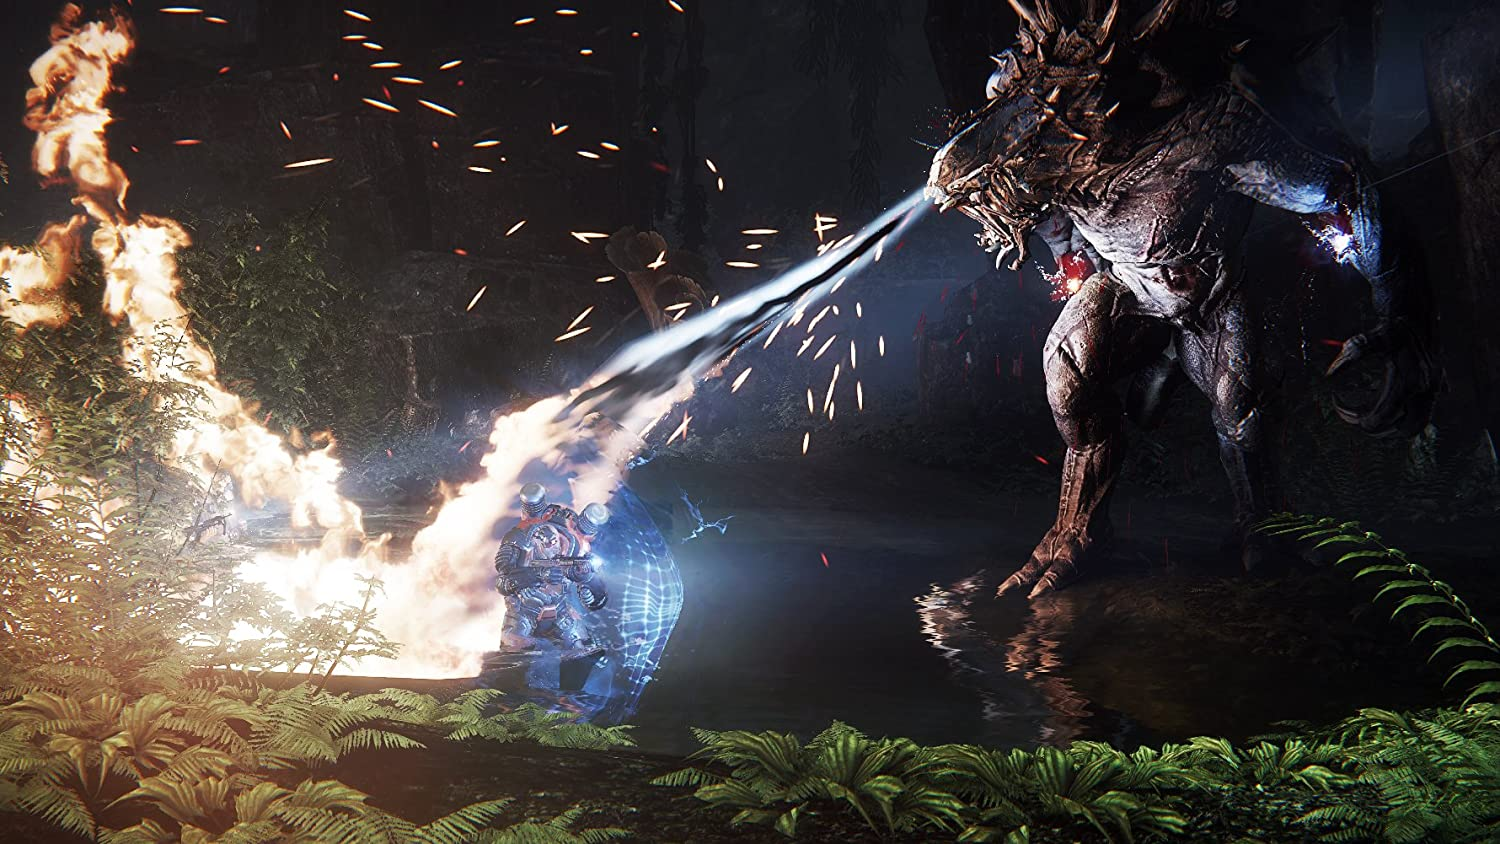 "Artistry in Games 2434999-evolve2 Evolve ""Big Alpha"" PC Preview Amazon Opinion  XBox Turtlerock Turtle TPS Test Take2 Stealth Rock Preview Pretentious Playstation PC One multiplayer monster Look Kraken in Hunters Hunter Goliath games game FPS first evolve Competitive Big Beta Artistry Action 4 2K #ps4   Artistry in Games 2014-11-01_00002 Evolve ""Big Alpha"" PC Preview Amazon Opinion  XBox Turtlerock Turtle TPS Test Take2 Stealth Rock Preview Pretentious Playstation PC One multiplayer monster Look Kraken in Hunters Hunter Goliath games game FPS first evolve Competitive Big Beta Artistry Action 4 2K #ps4   Artistry in Games 81NYpuQ-S7L._SL1500_ Evolve ""Big Alpha"" PC Preview Amazon Opinion  XBox Turtlerock Turtle TPS Test Take2 Stealth Rock Preview Pretentious Playstation PC One multiplayer monster Look Kraken in Hunters Hunter Goliath games game FPS first evolve Competitive Big Beta Artistry Action 4 2K #ps4"